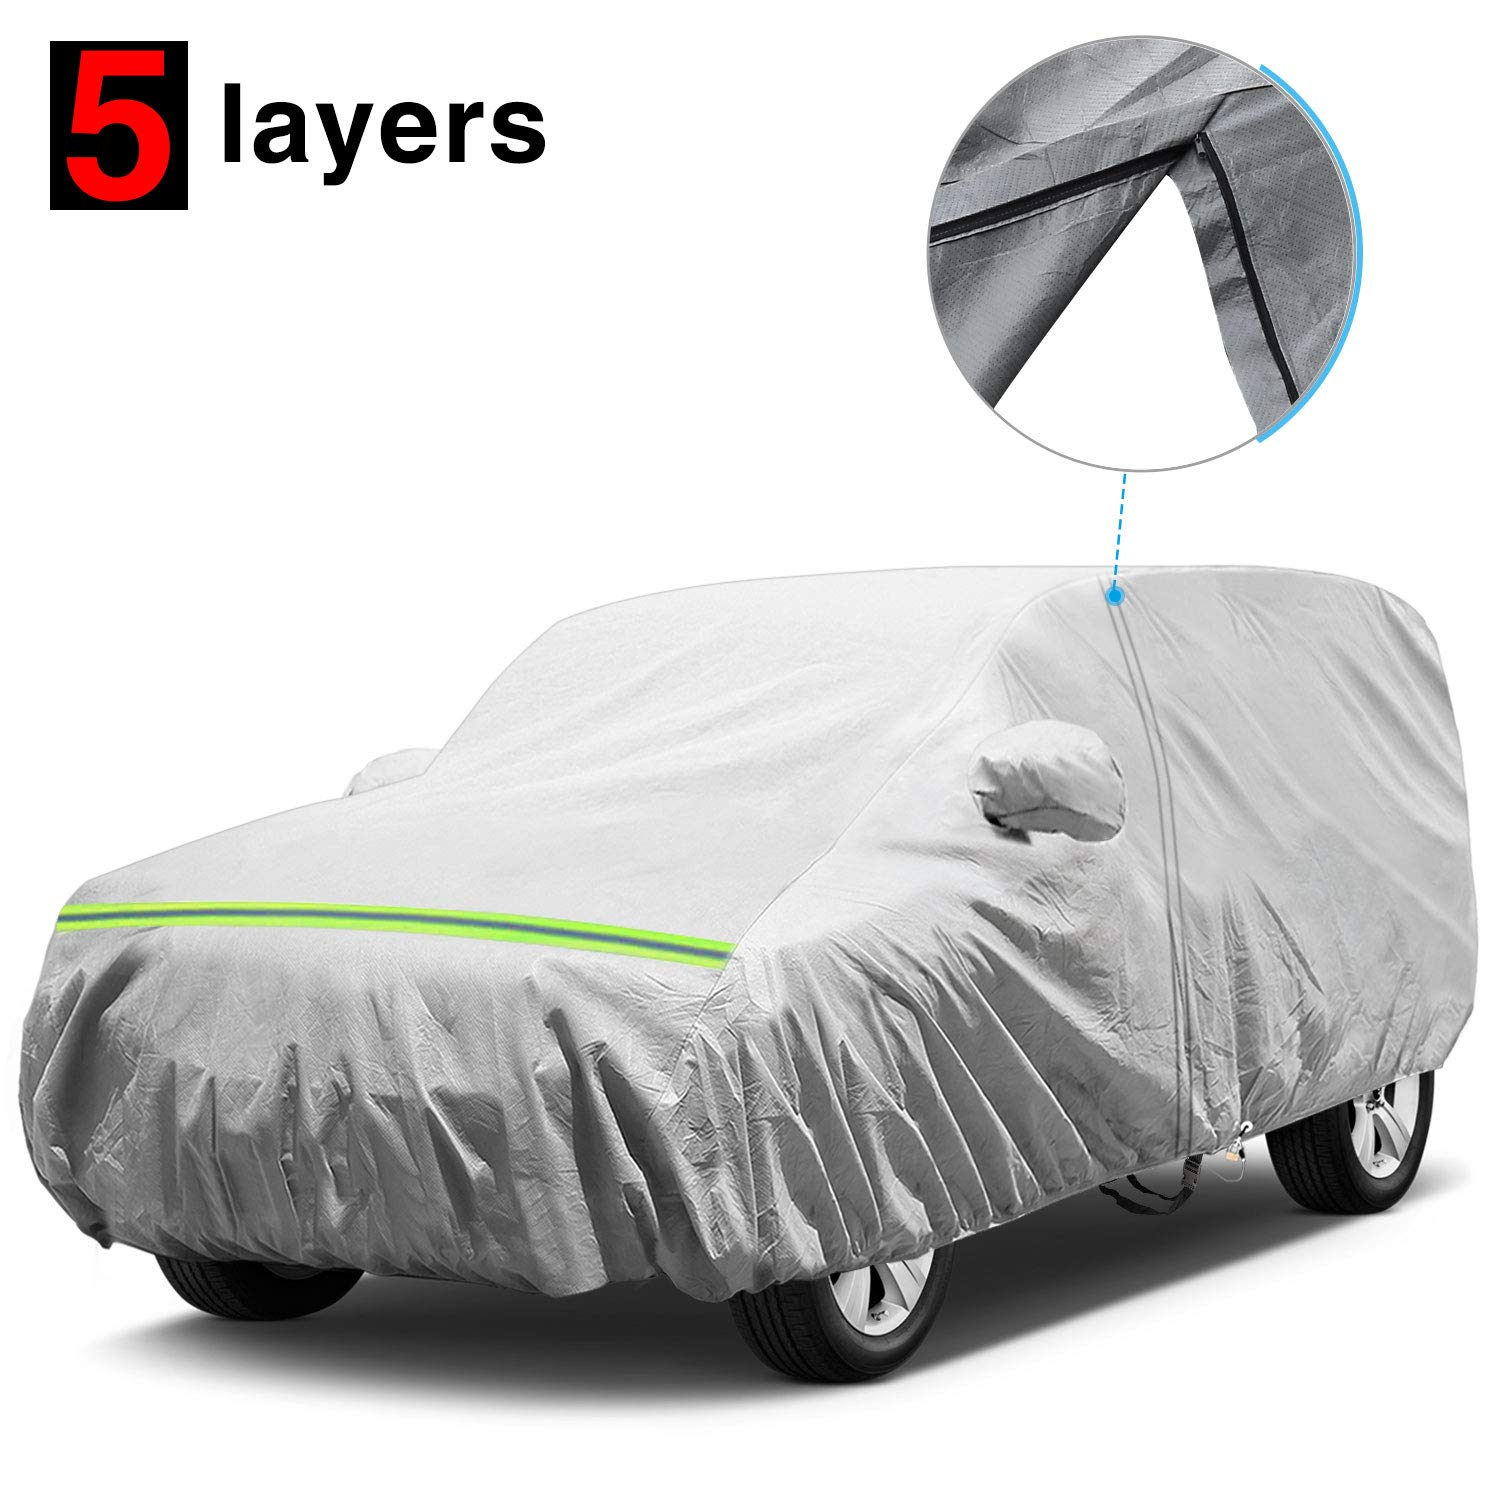 KAKIT Waterproof Jeep Cover, 5 Layers 4 Door All Weather UV Protection Car Cover for Jeep Wrangler with Driver Door Zipper, Fits up to 194''